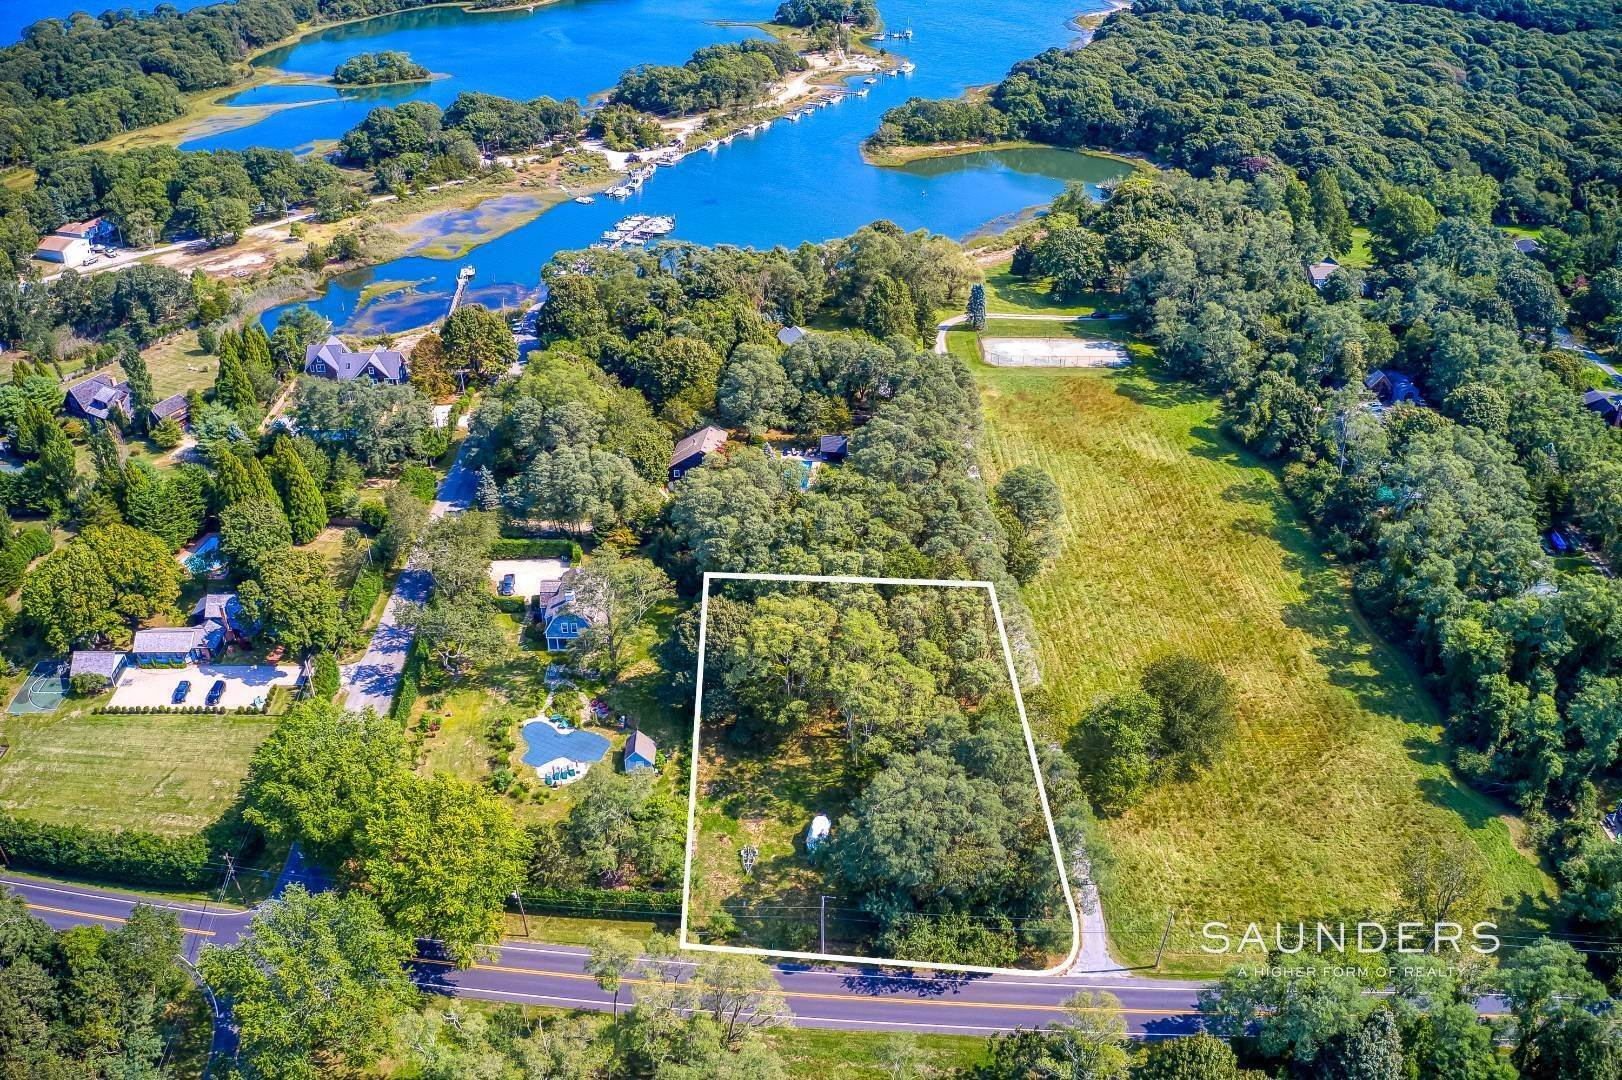 Land for Sale at Shelter Island Close To Boating Acreage 3 South Cartwright Road, Shelter Island, NY 11964